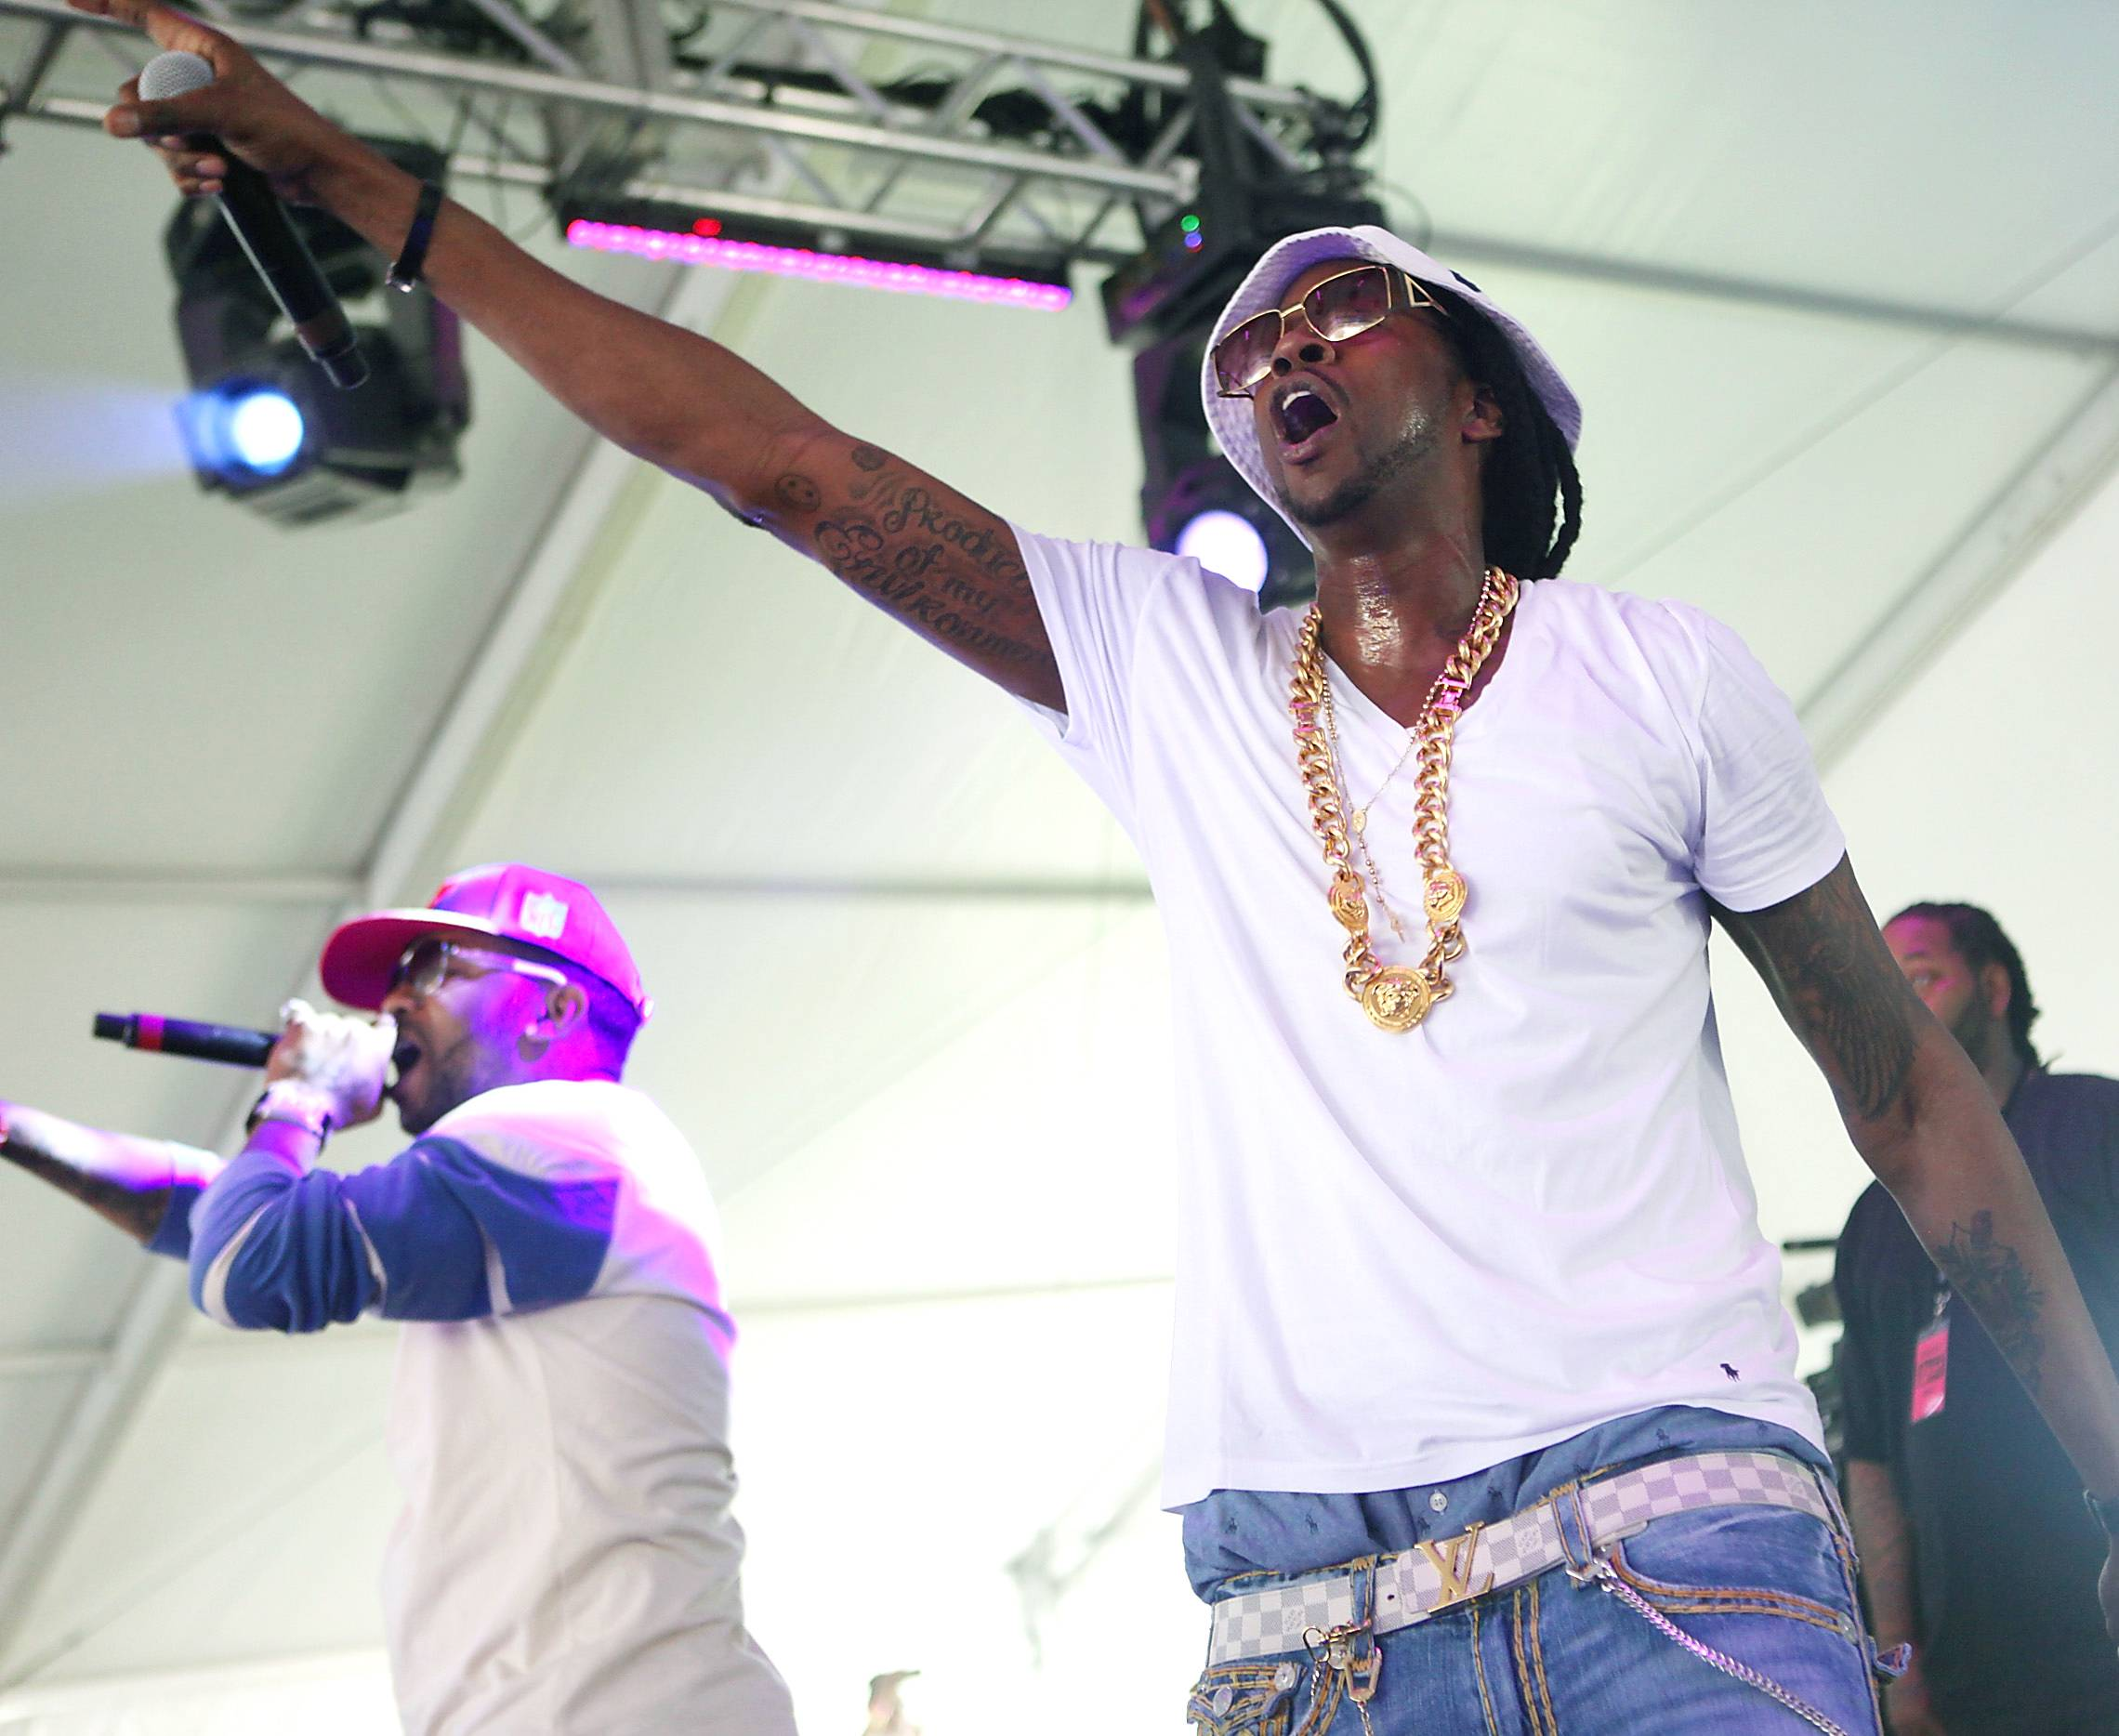 SXSW - SXSW bore witness to a legend in the making when 2 Chainz brought out Kanye West during his set at the Malaia World Lounge (which was sponsored by S.O.B.'s). The Internets went ablaze with rumors that Kanye was interested in having 2 Chainz join the ranks of his G.O.O.D. Music label.(Photo: Roger Kisby/Getty Images)